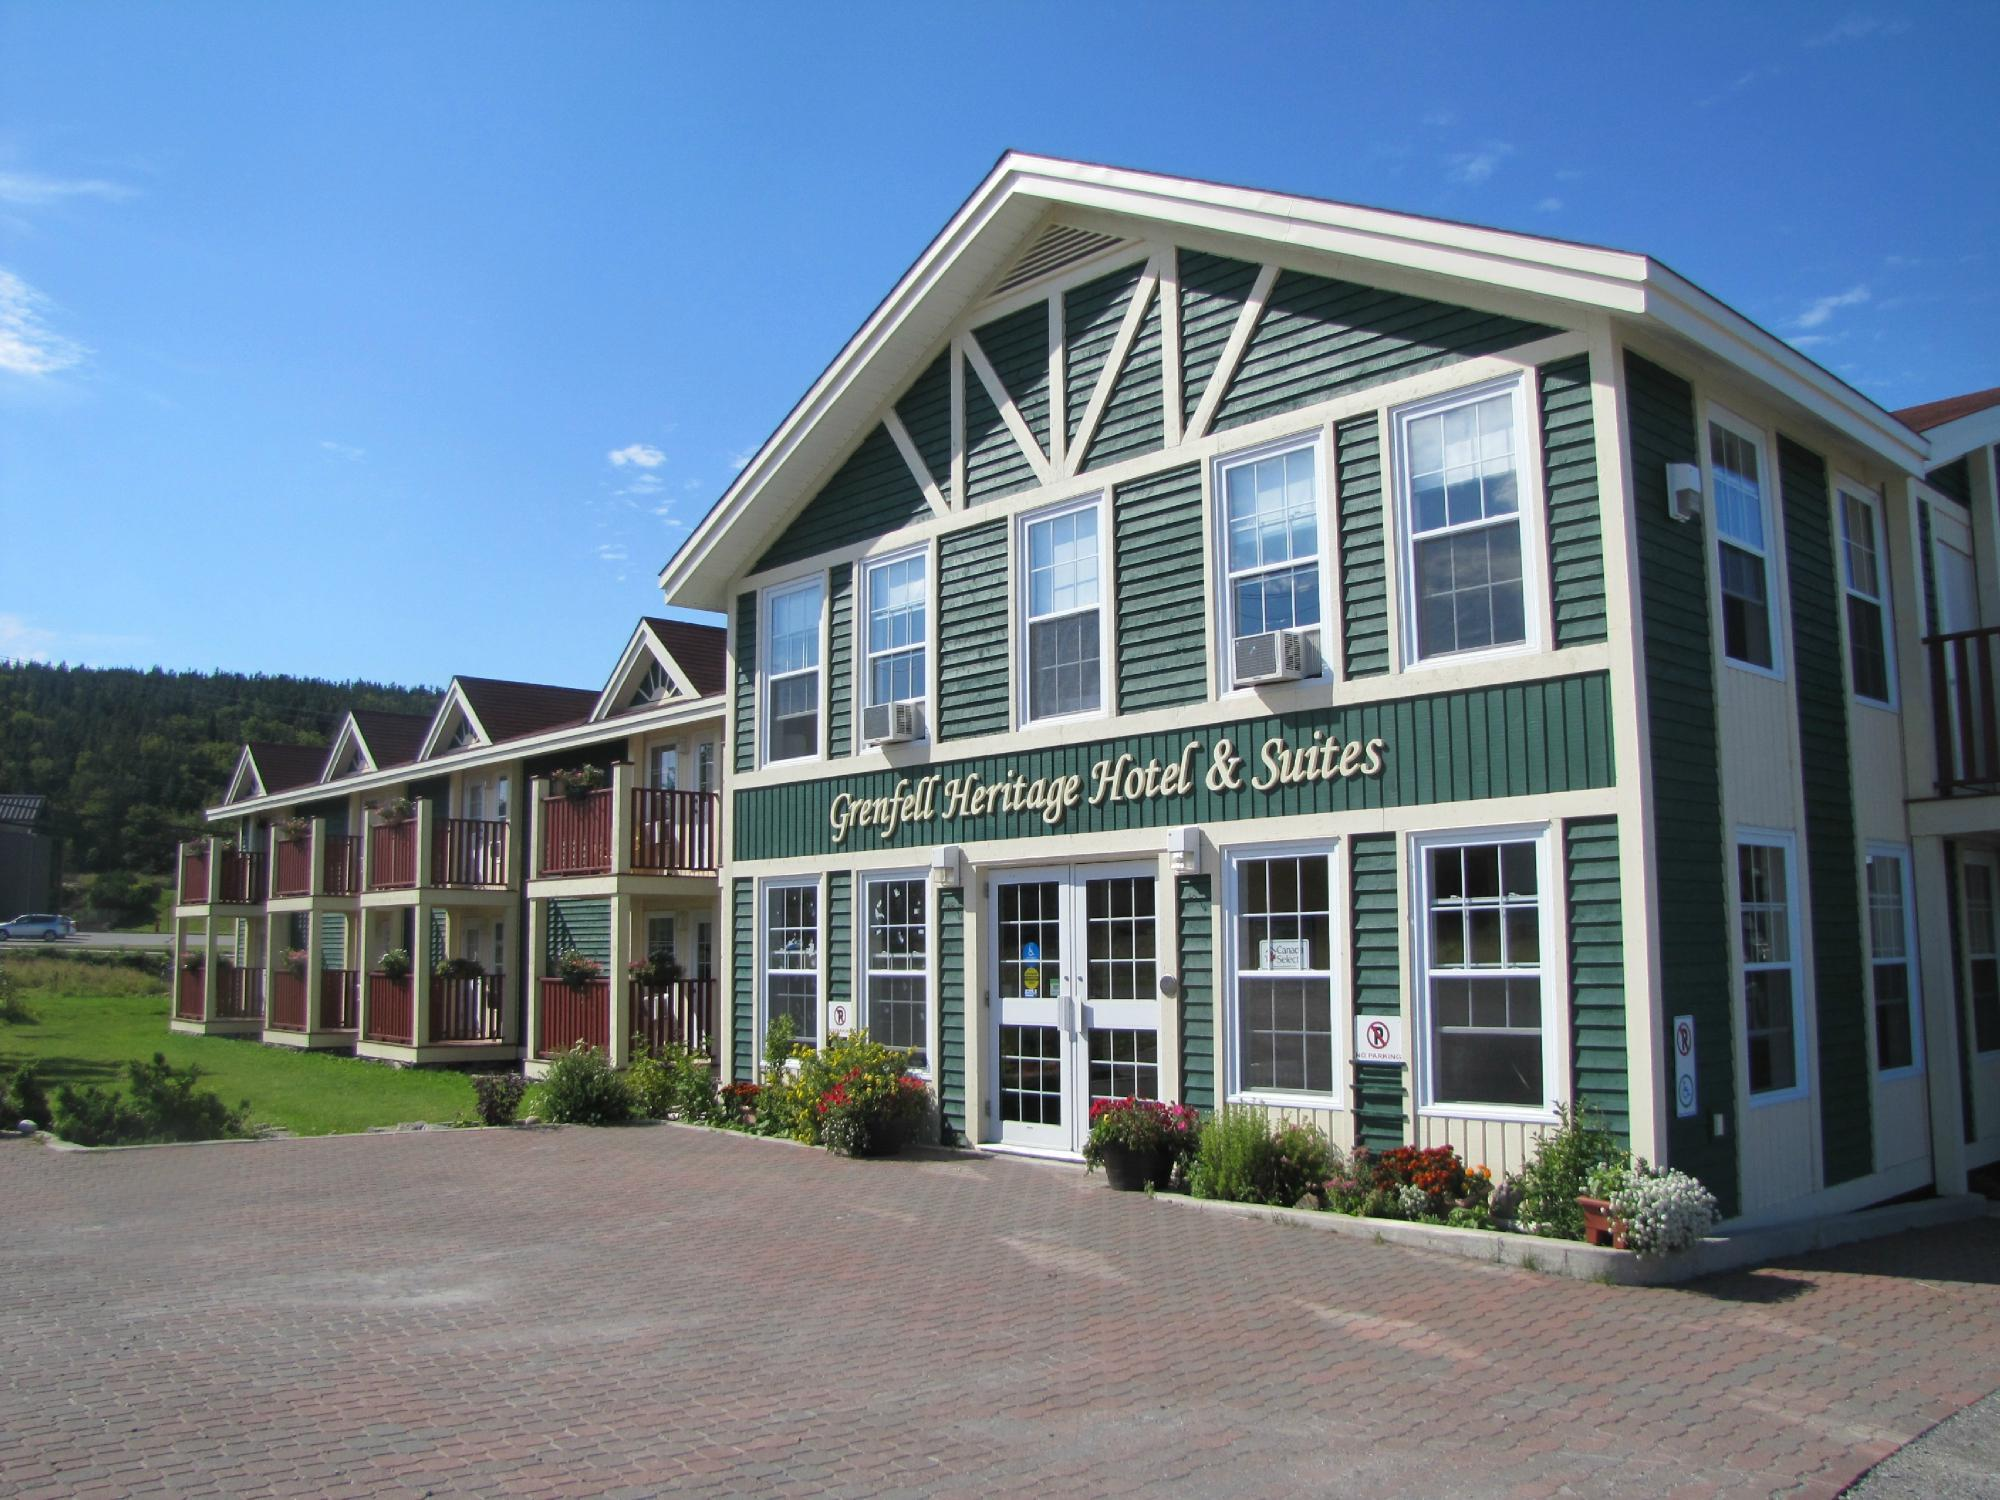 Grenfell Heritage Hotel & Suites